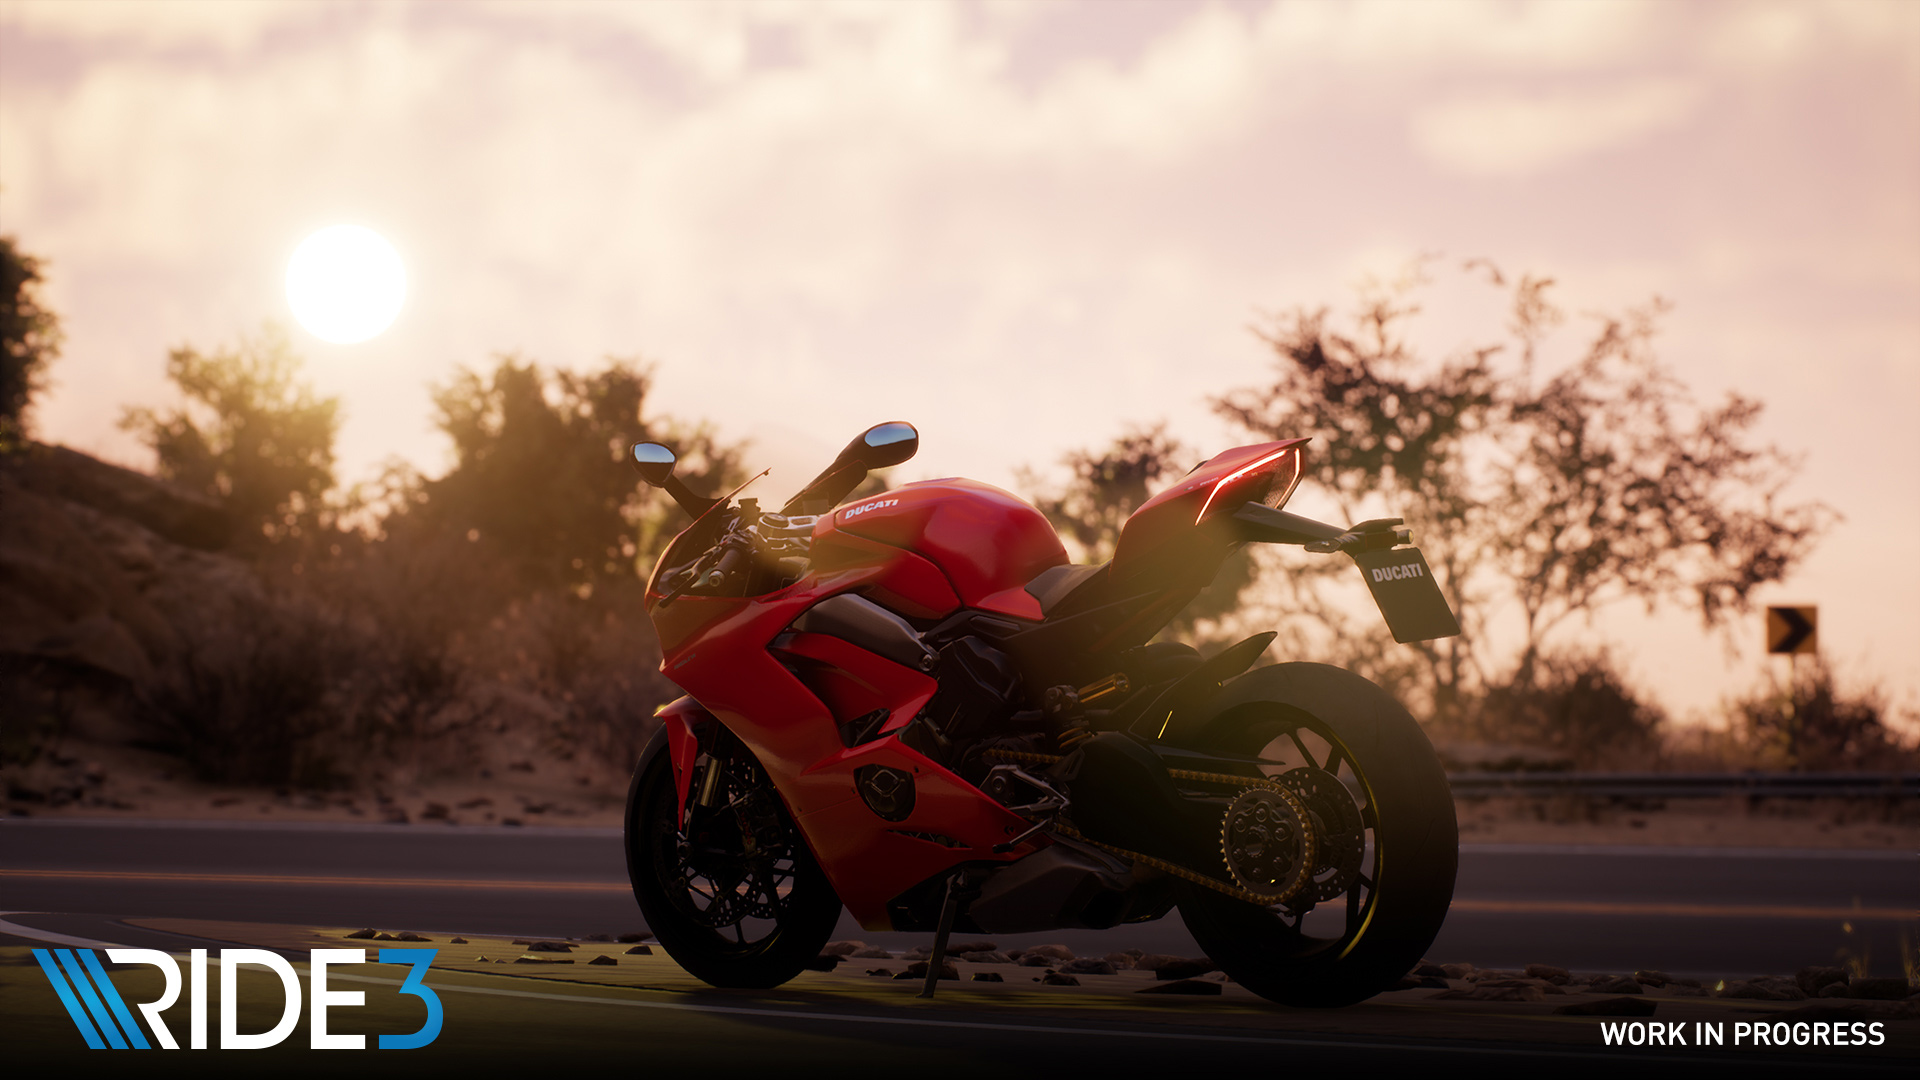 Ride 3 PS4 demo confirmed for Gamescom